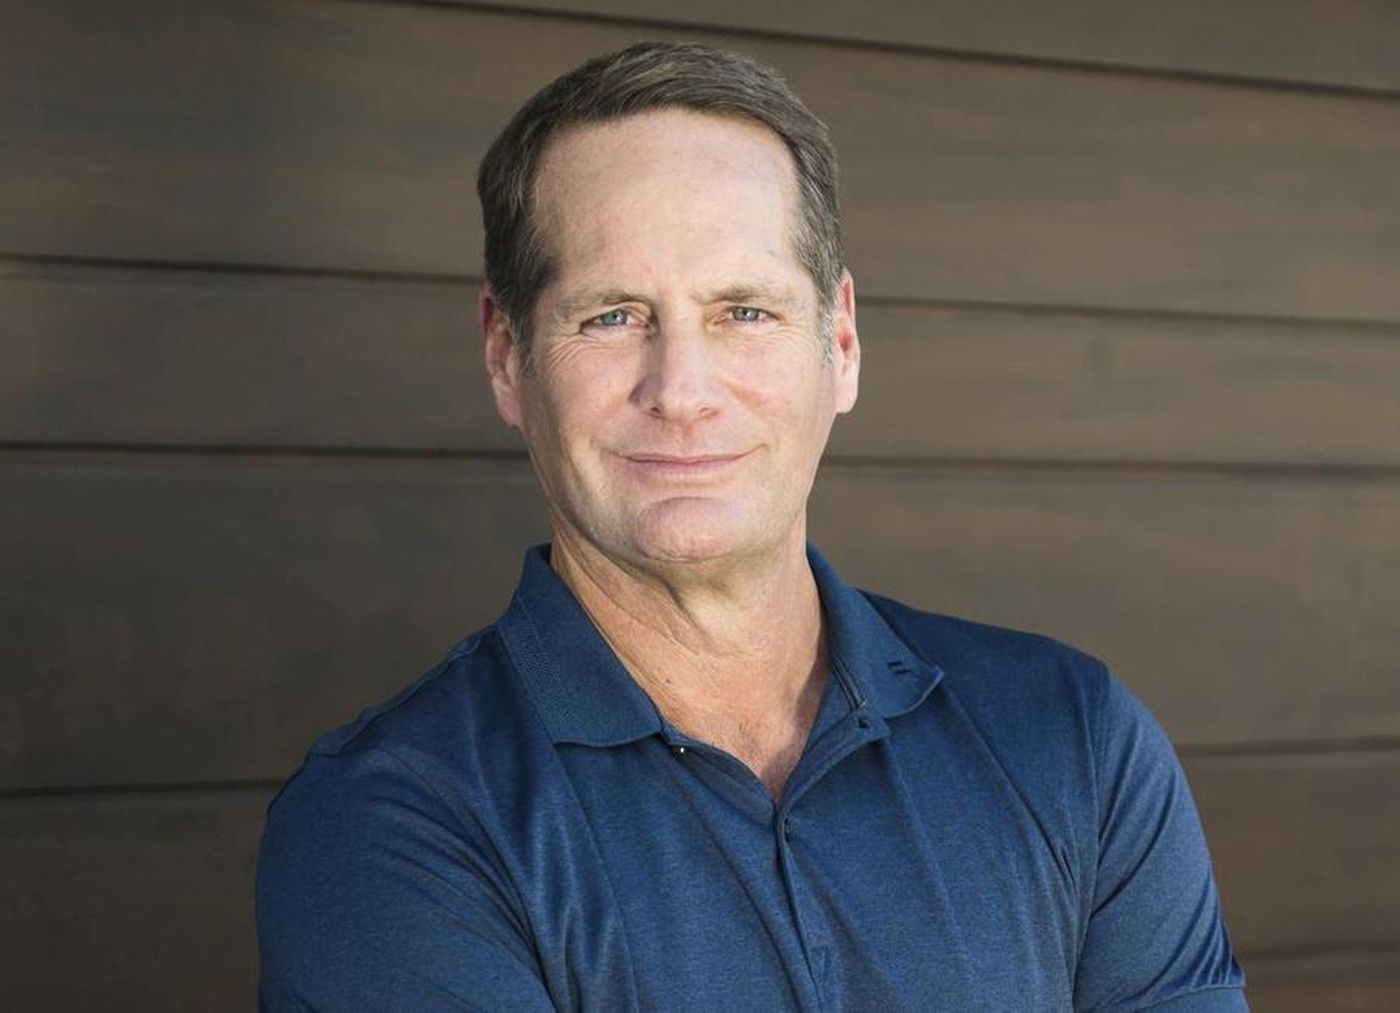 Democrat Harley Rouda will challenge GOP Rep. Dana Rohrabacher in California's 48th Congressional District in November after his opponent Hans Keirstead conceded the second-place spot in the June 5 primary on June 24, 2018. (Credit: Courtesy of Harley Rouda for Congress)